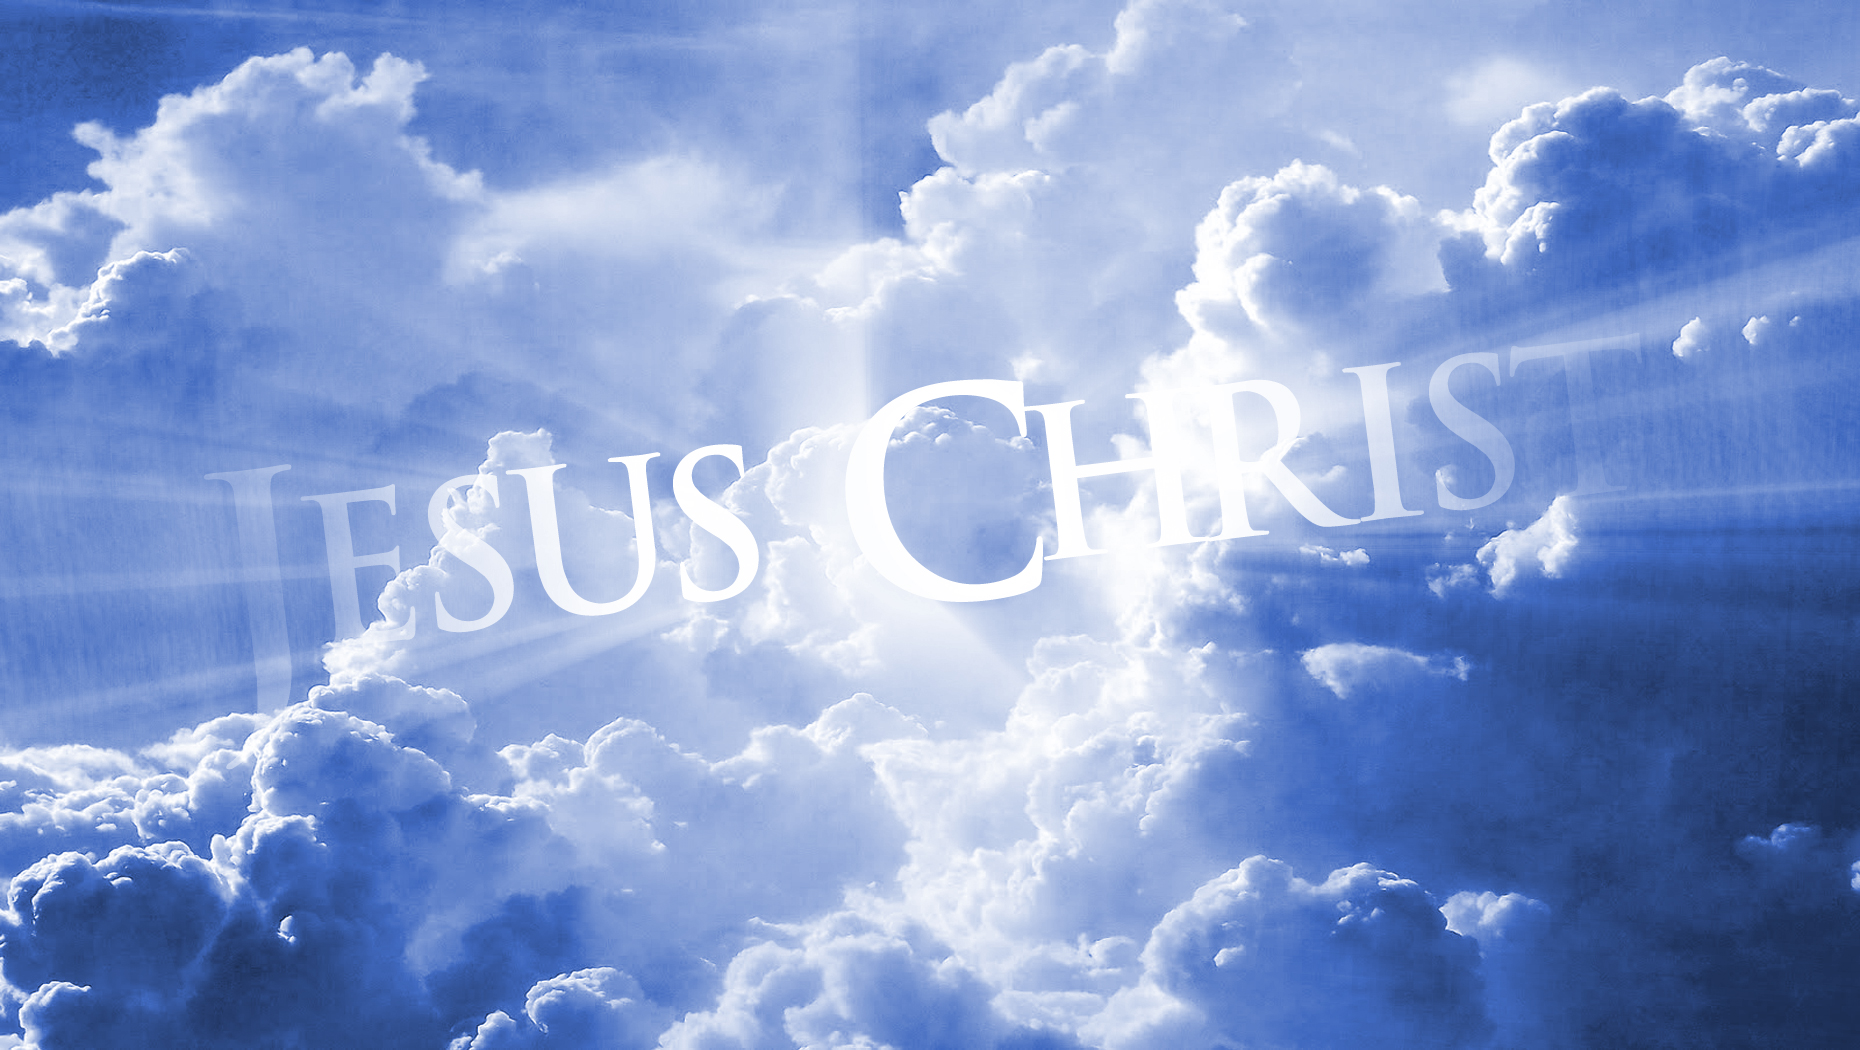 Jesus Christ in Heaven Wallpaper   Christian Wallpapers and 1860x1050